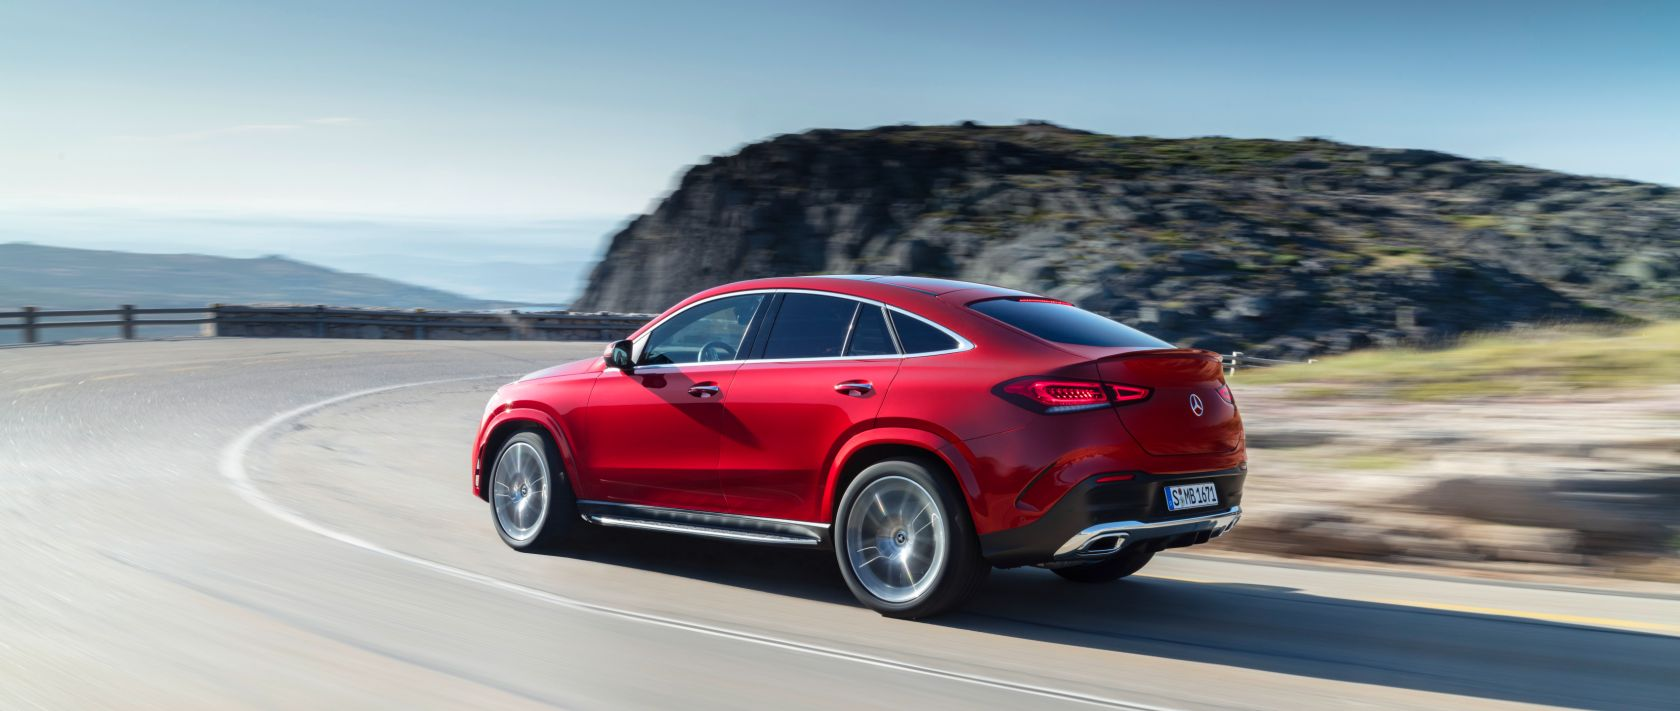 Rear view of the new 2020 Mercedes-Benz GLE Coupé (C 167) in designo hyacinth red metallic on a country road.